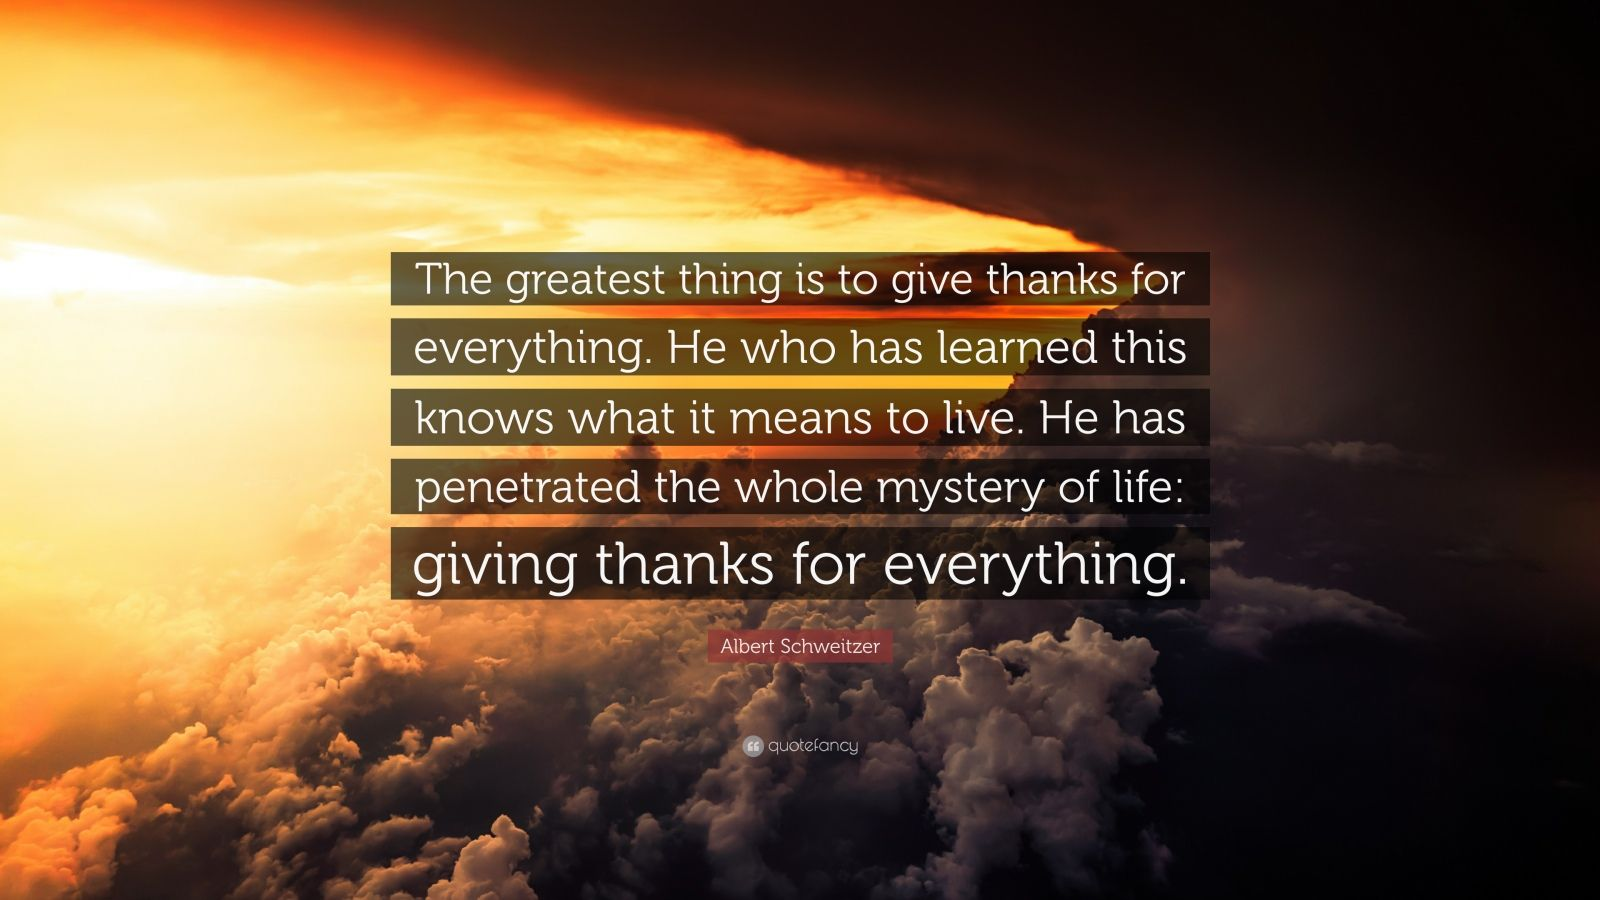 """Albert Schweitzer Quote: """"The greatest thing is to give thanks for everything. He who has learned this knows what it means to live. He has penetrated the whole mystery of life: giving thanks for everything."""""""